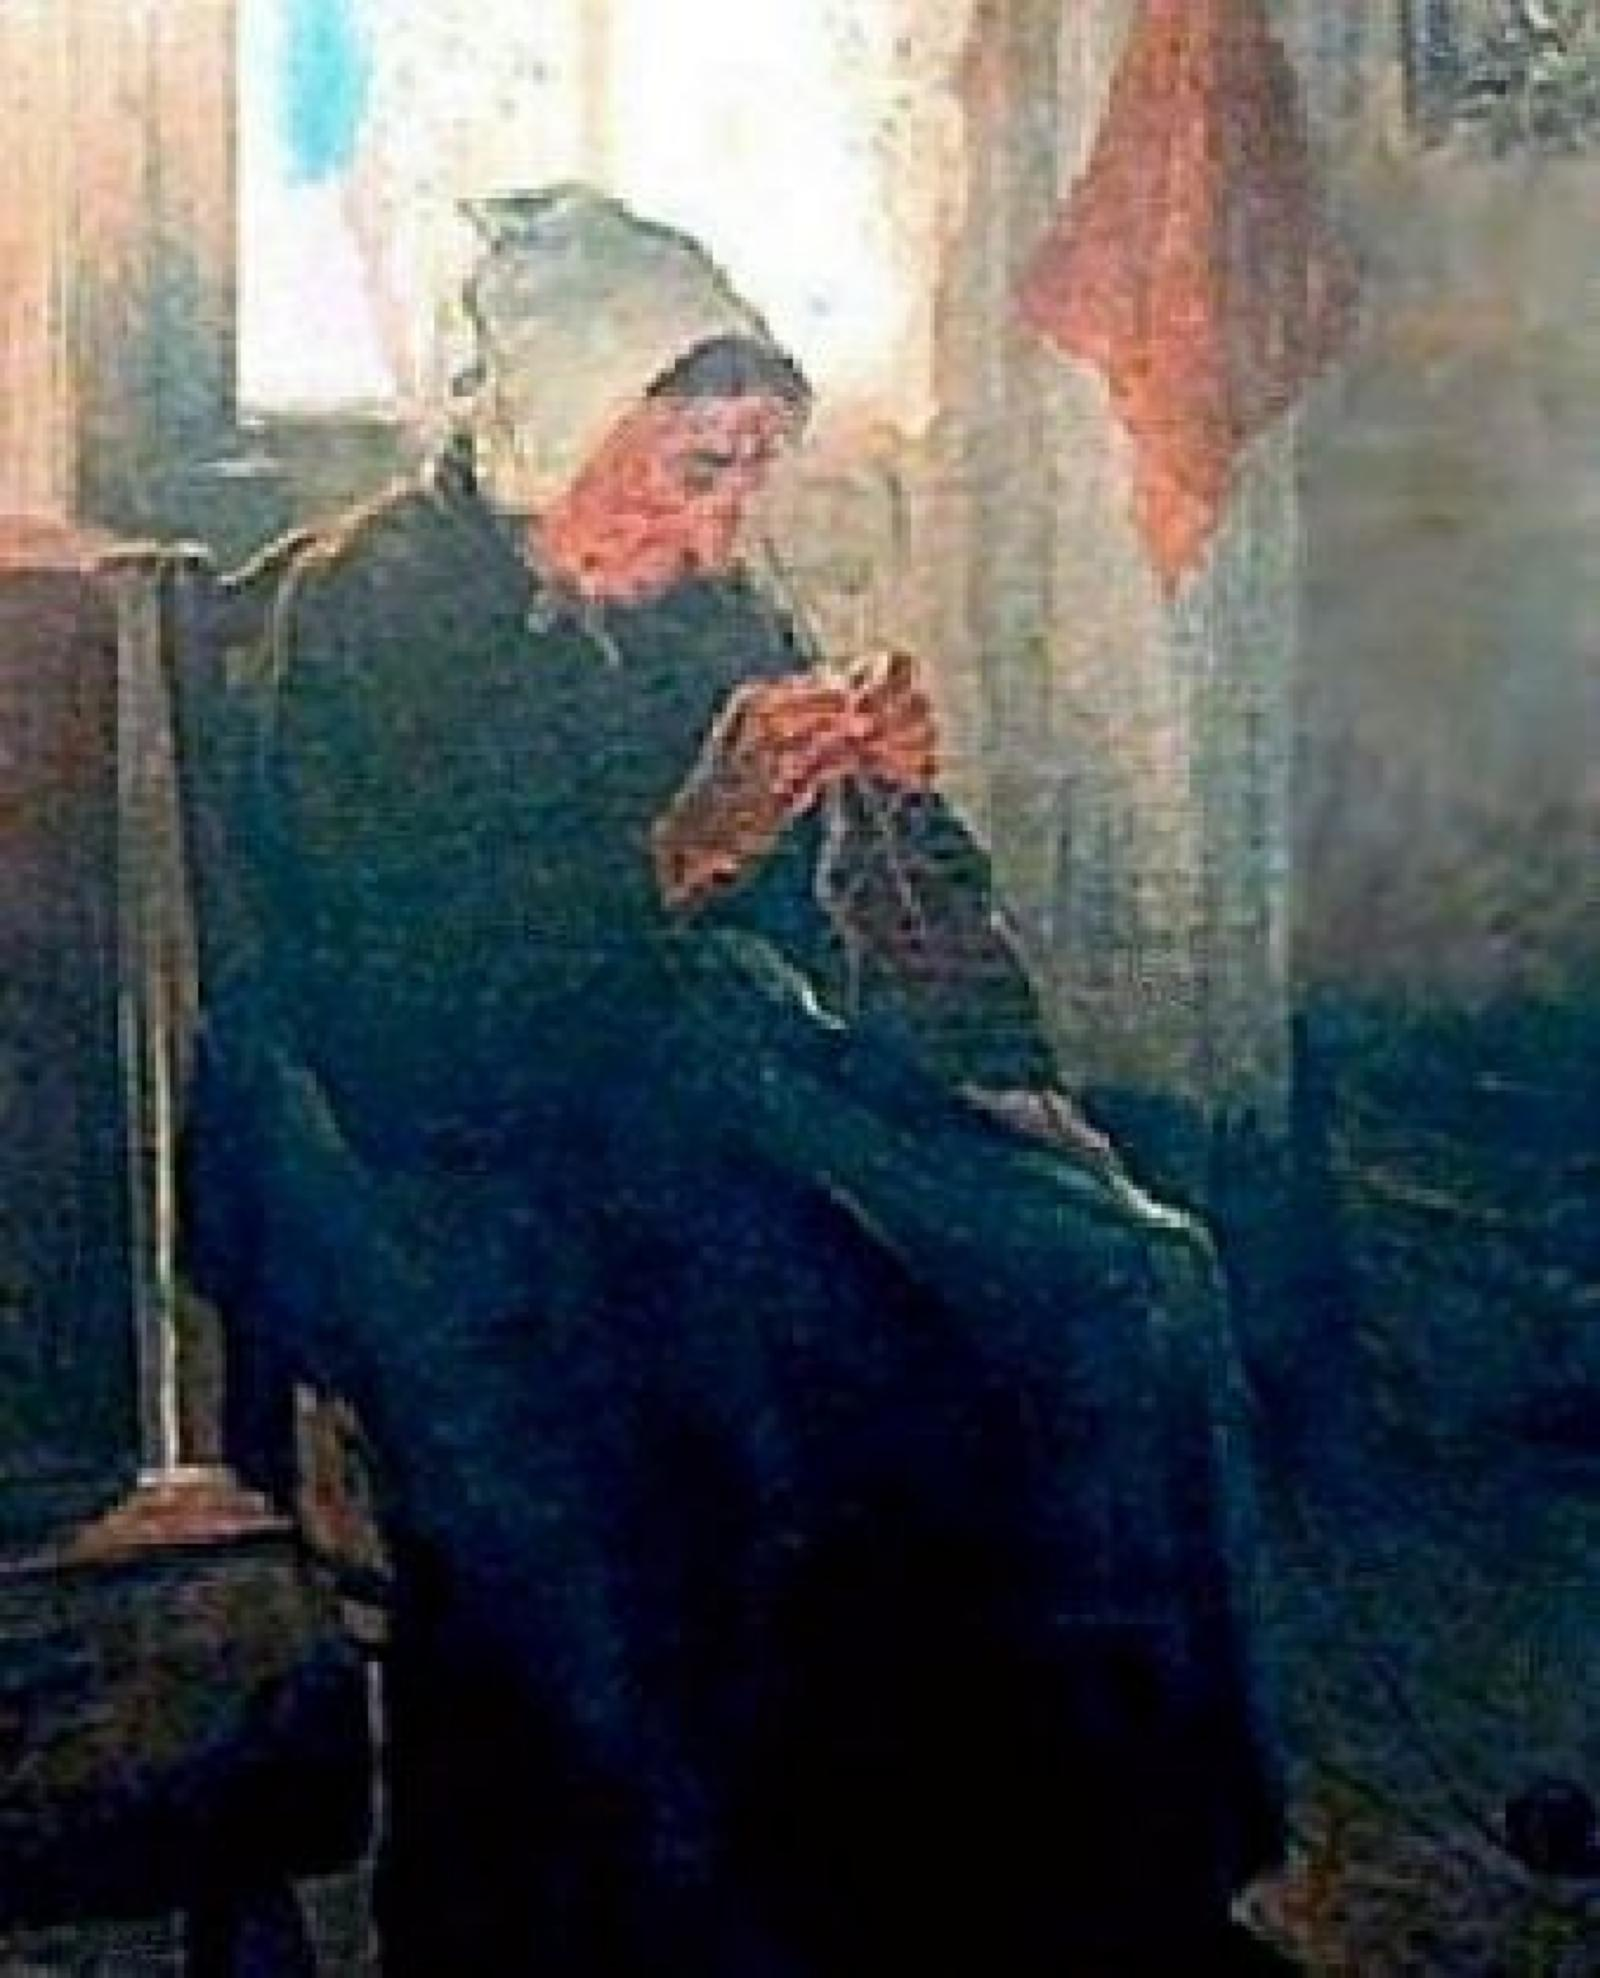 Image of an older woman wearing black with a white cap, sitting in a chair knitting.